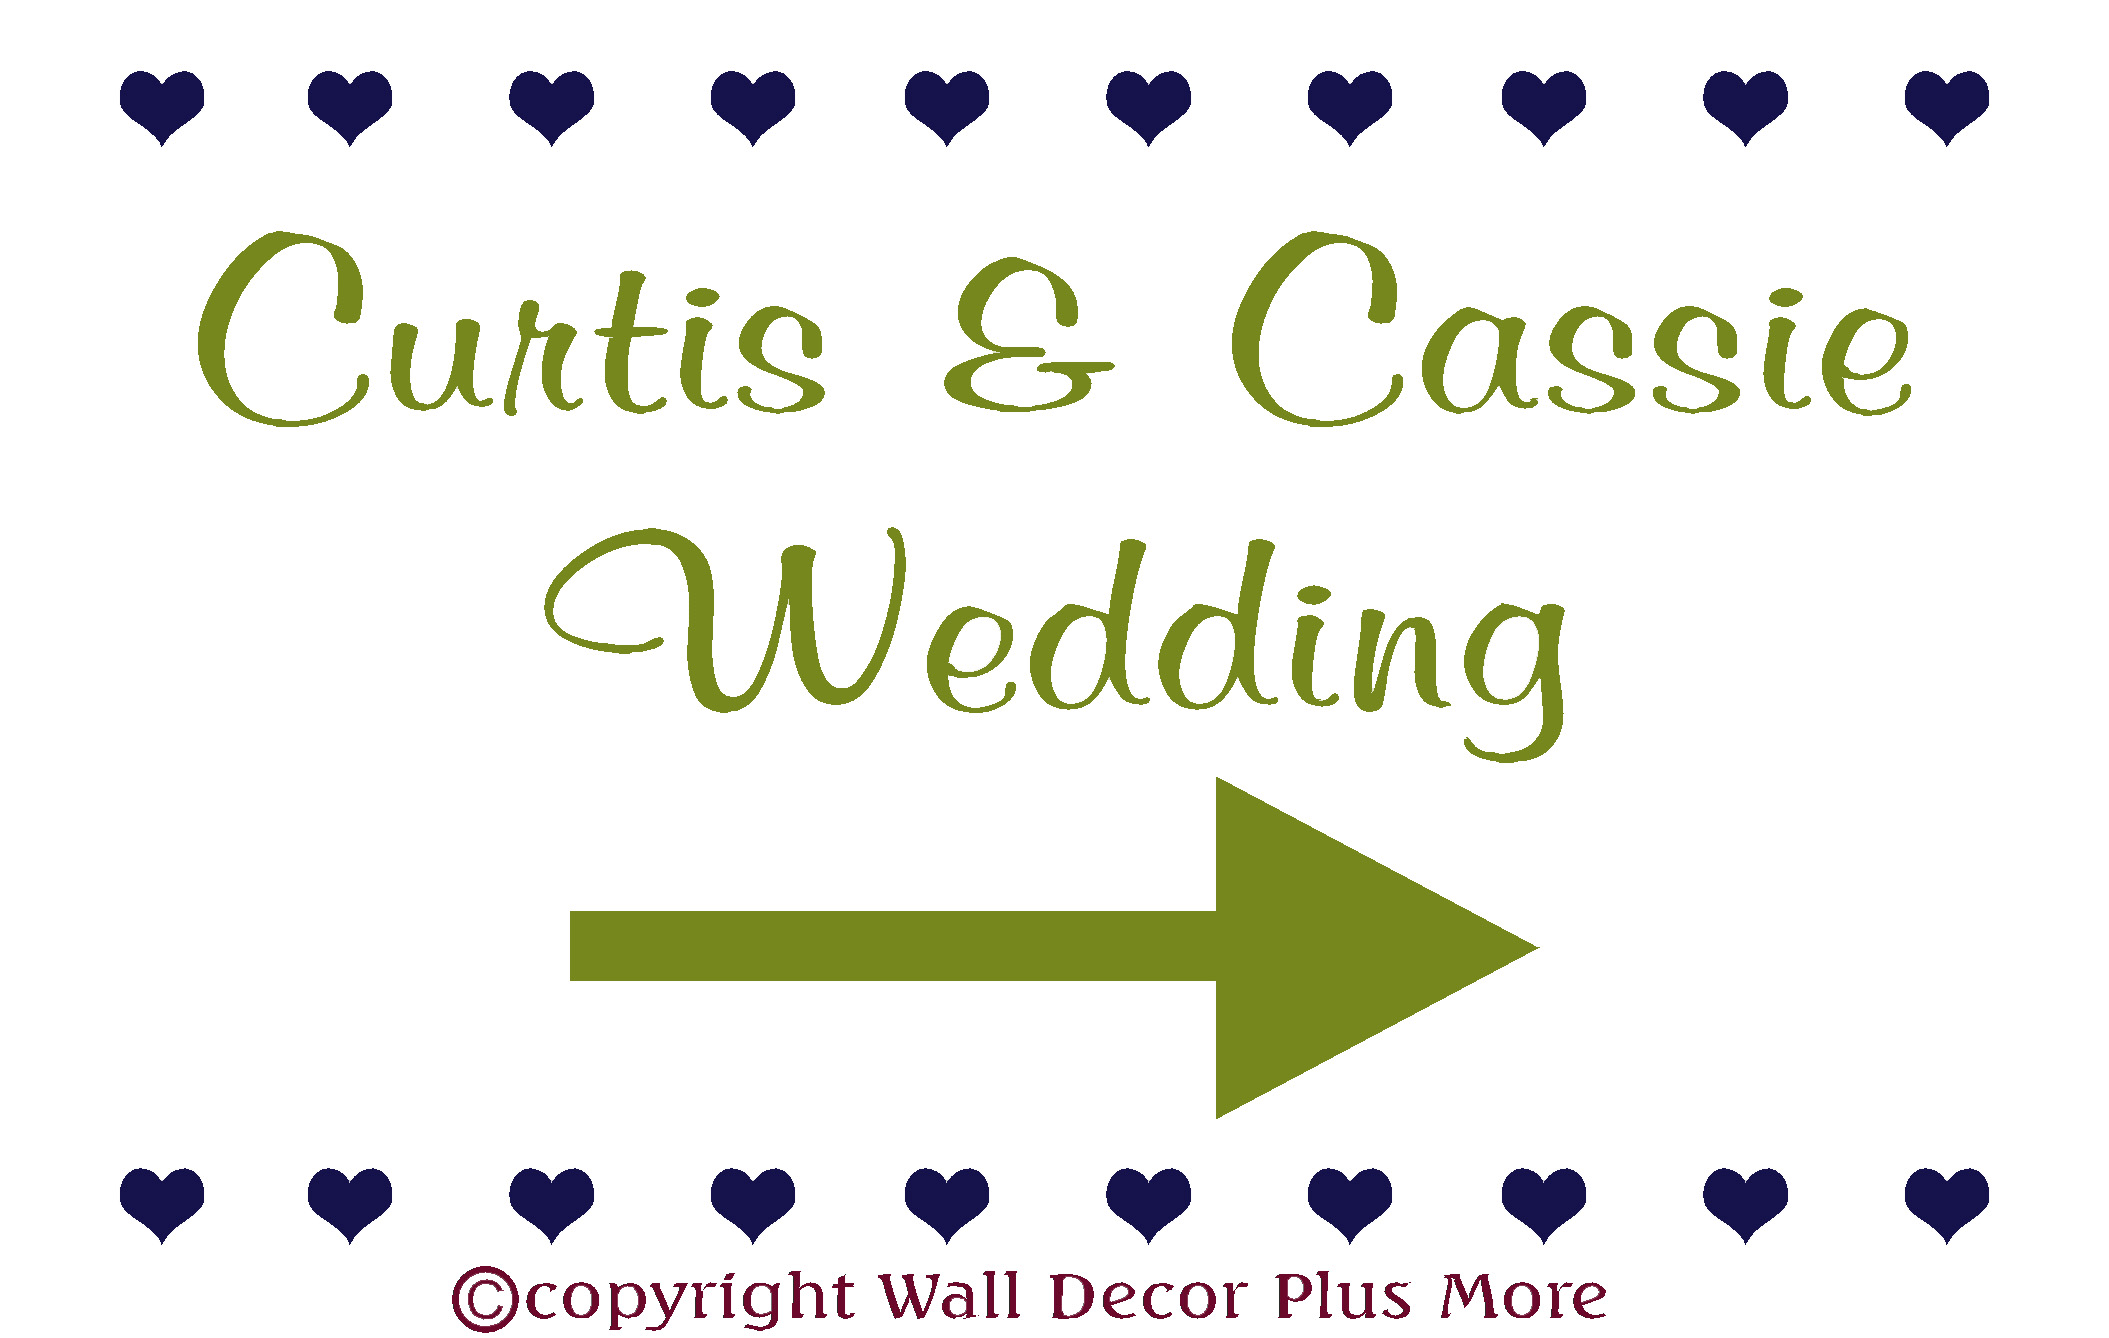 Wed11 Custom Wedding Vinyl Stickers for Road Sign